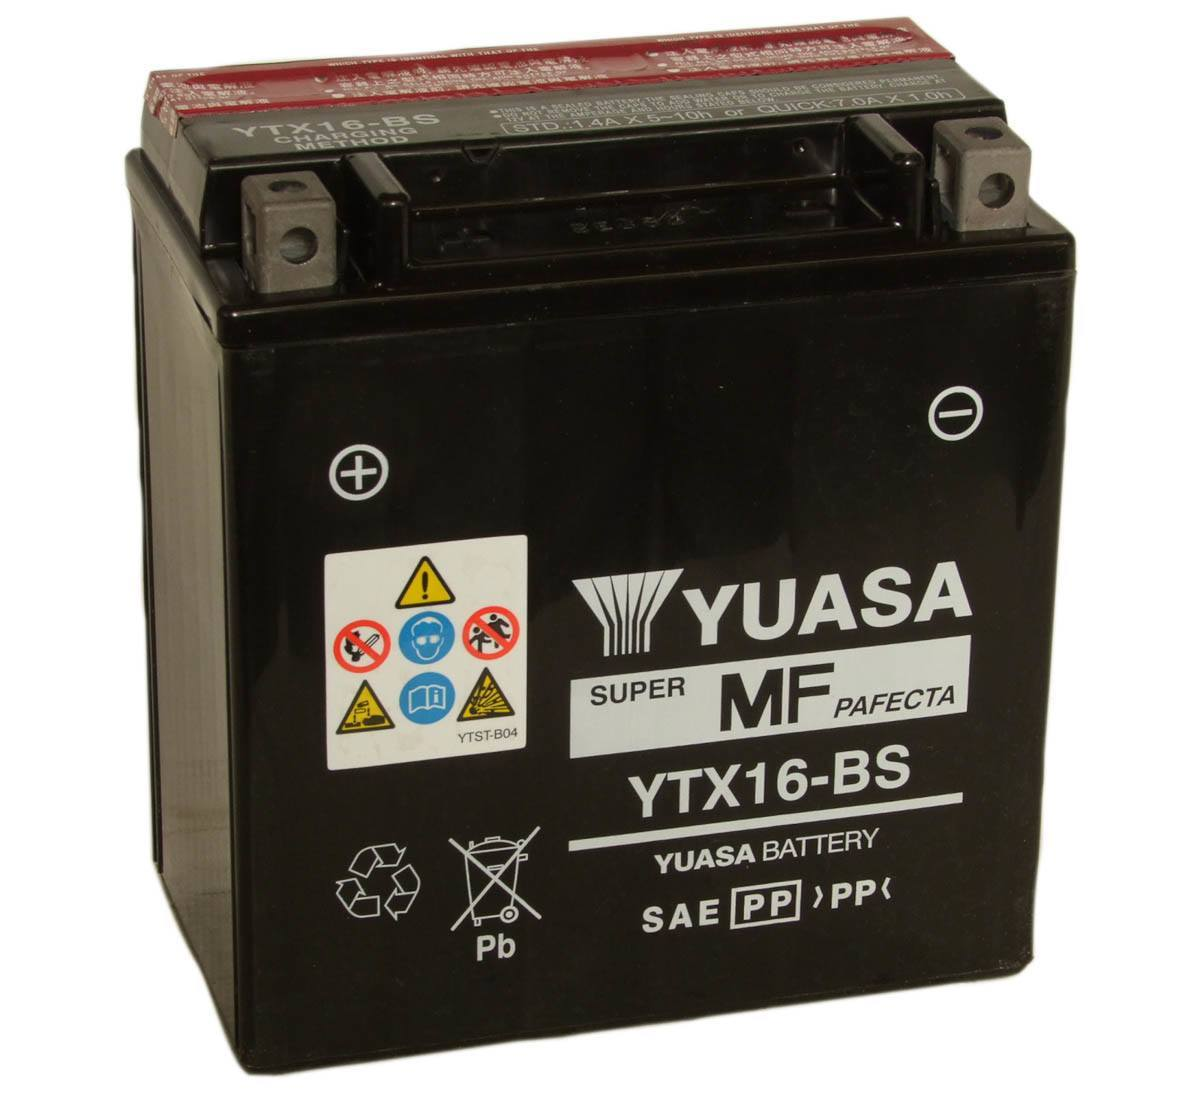 Yuasa YTX16-BS 12V Motorcycle Battery